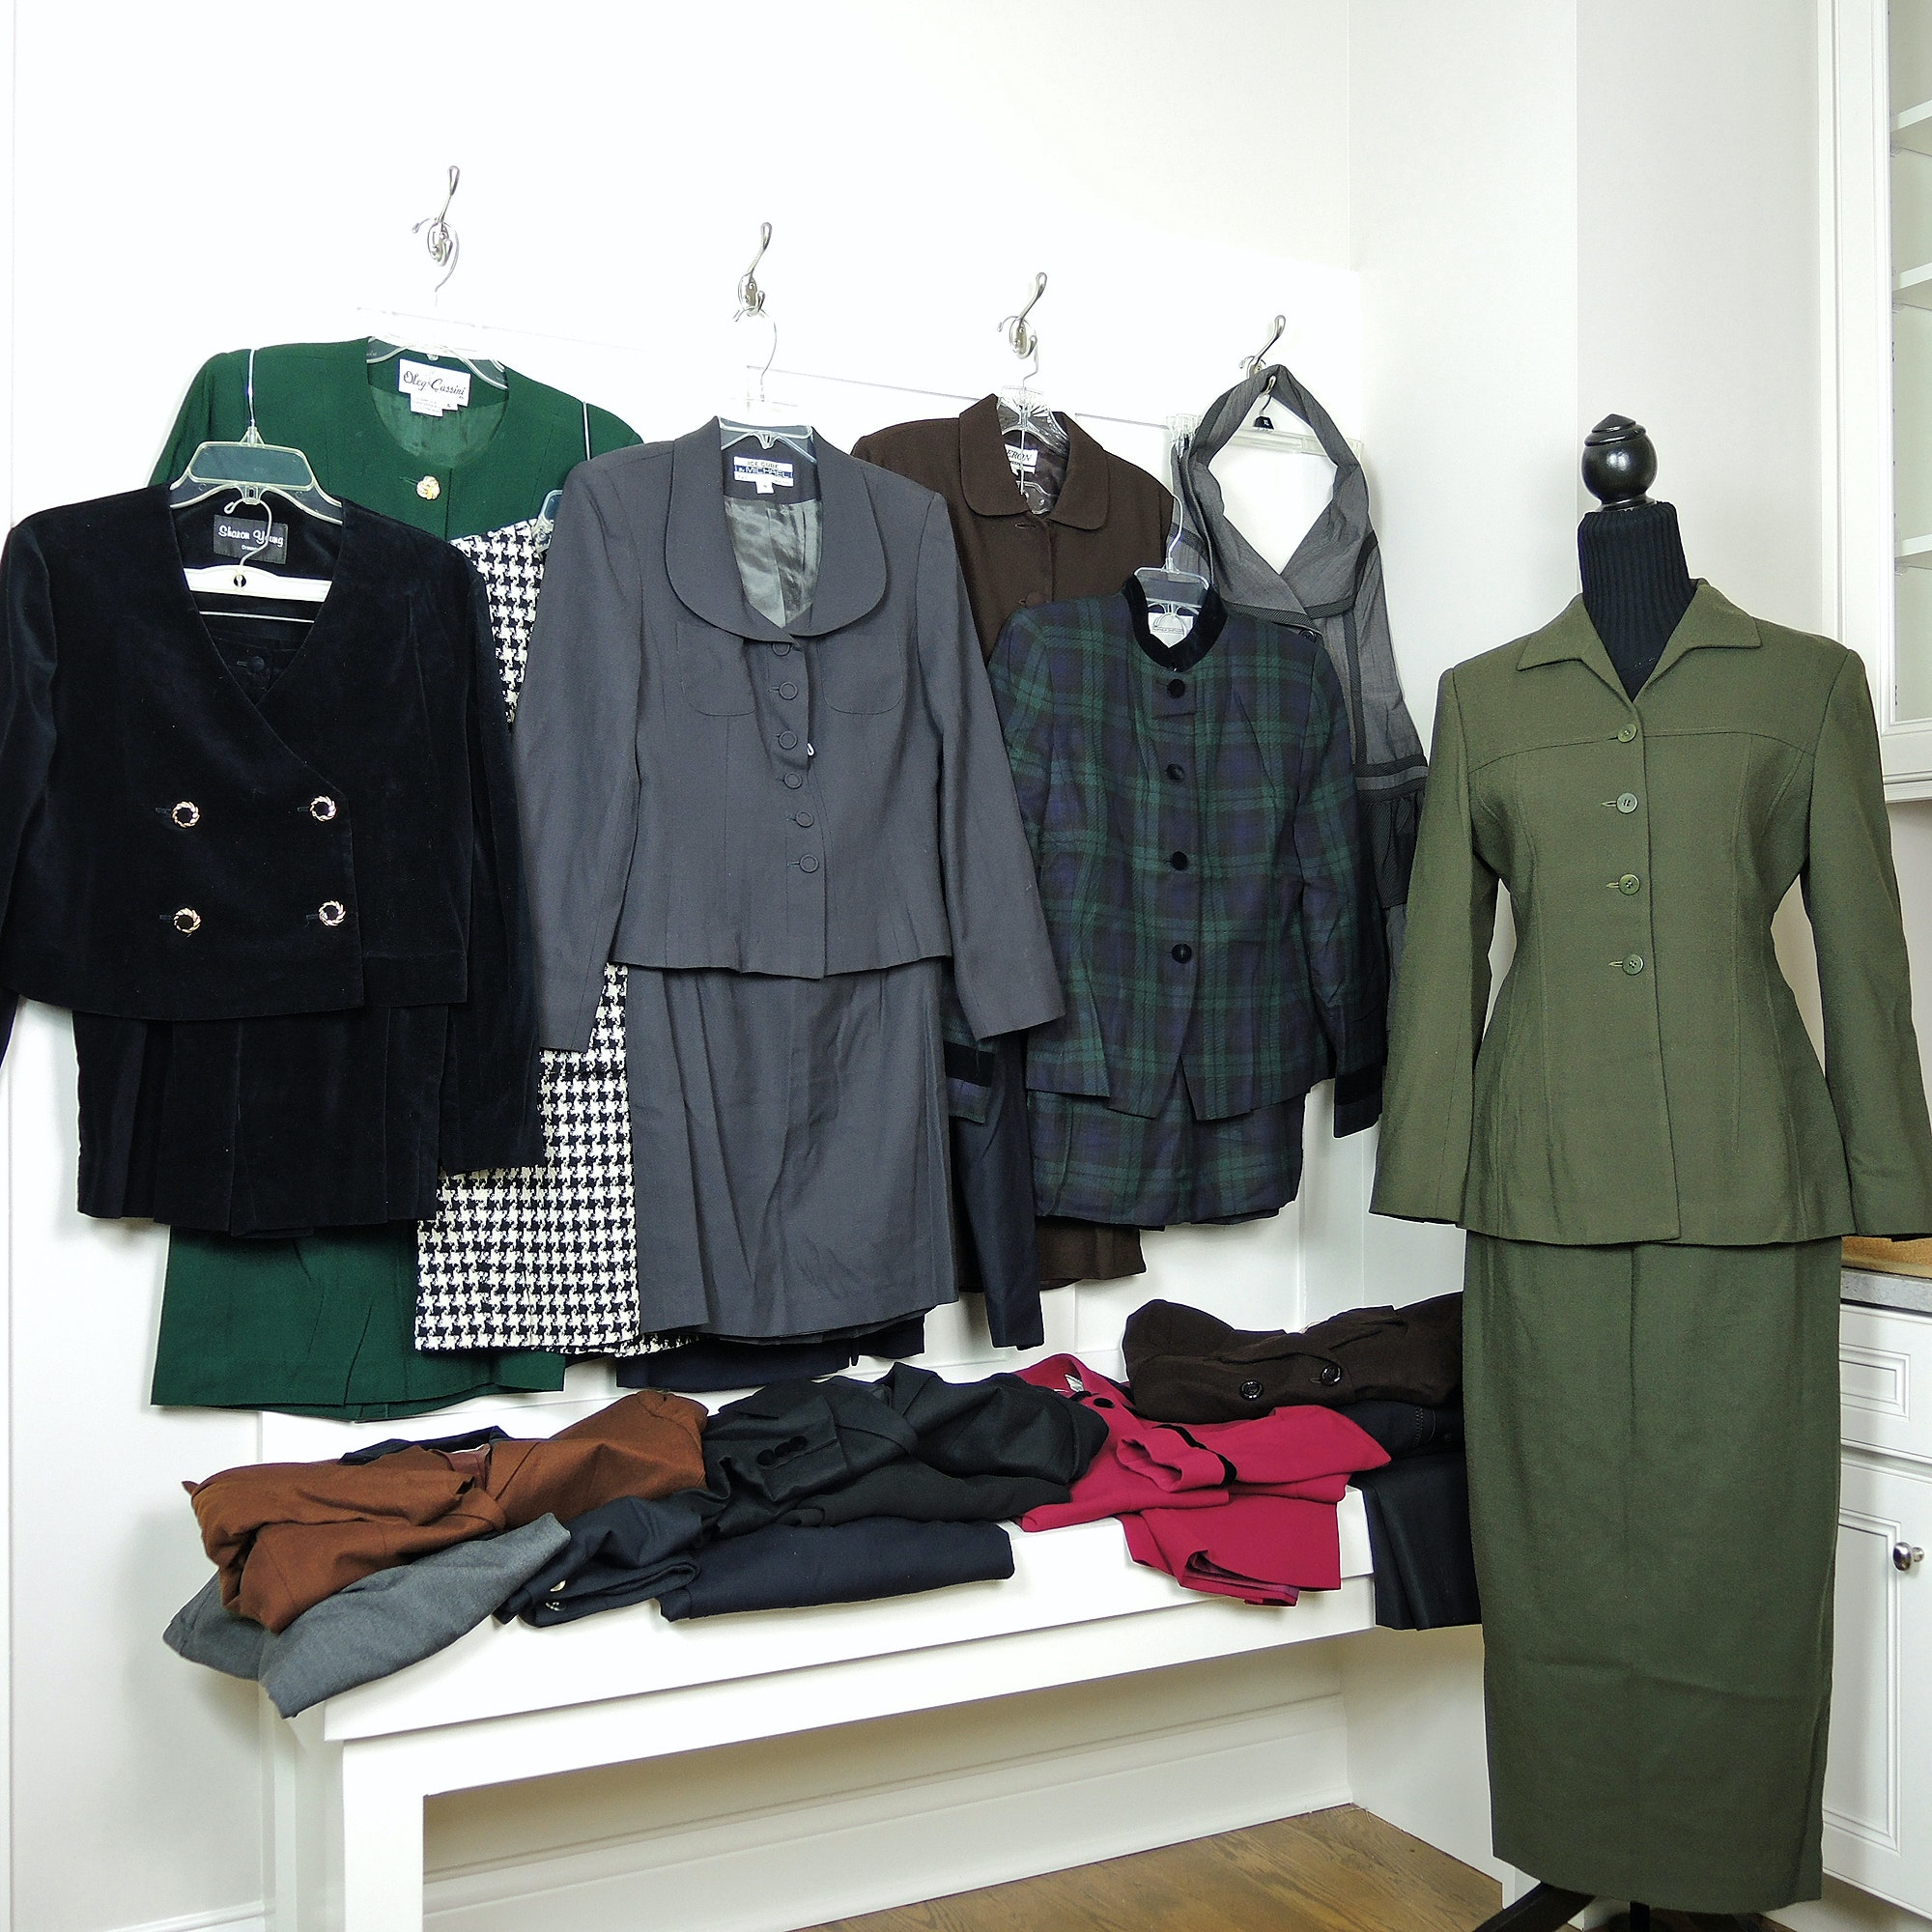 Women's Vintage Designer Suits and Clothing Including Lord & Taylor and Adolfo